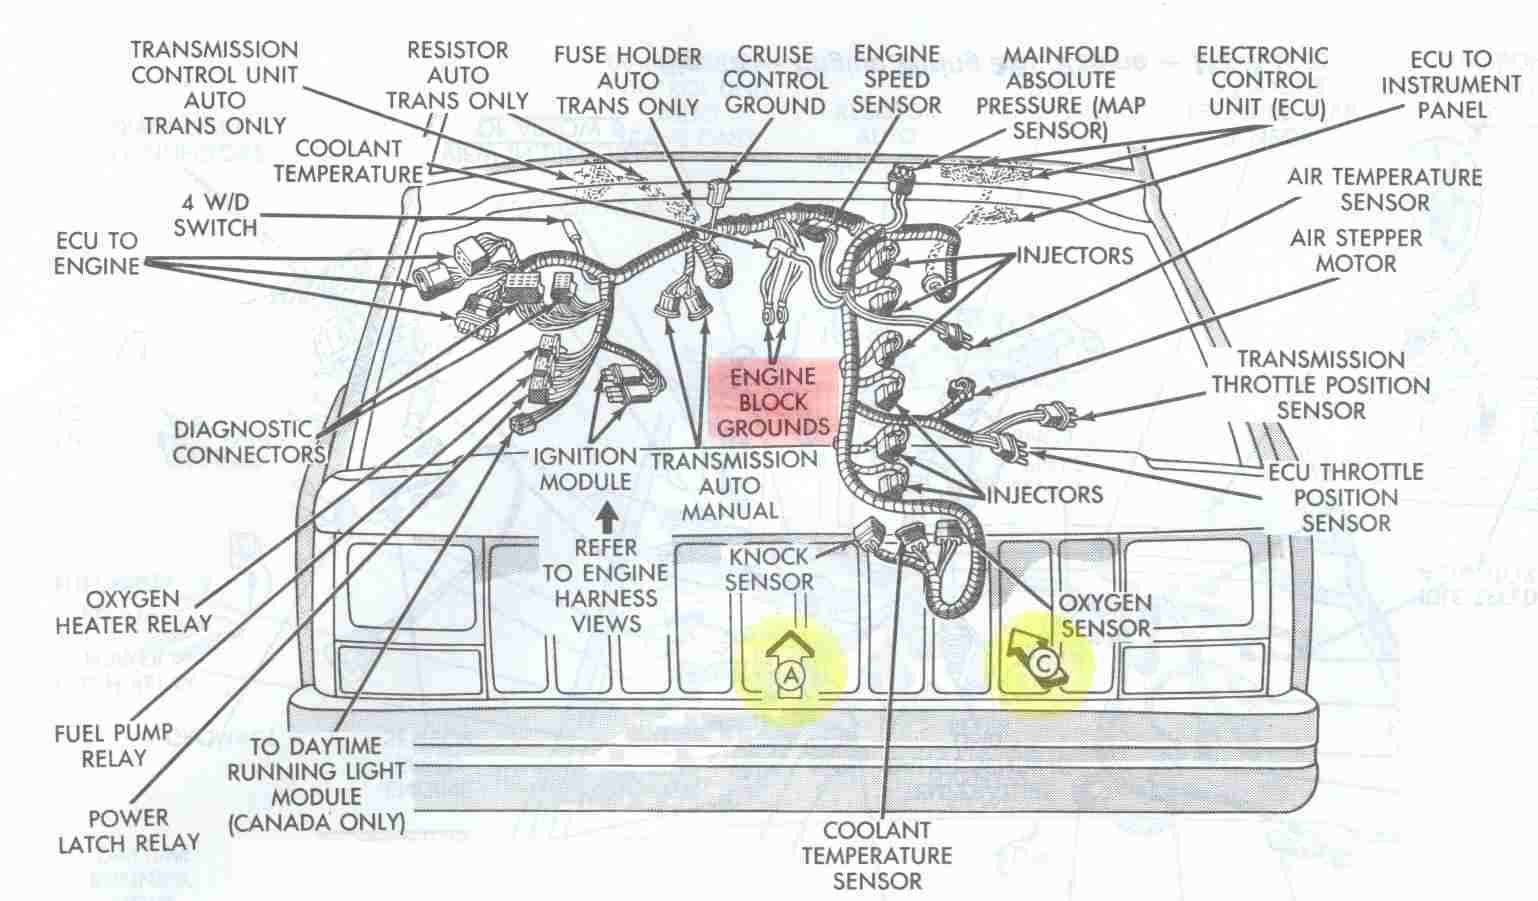 ab0134a7d9e021431187af597eb4aeca engine bay schematic showing major electrical ground points for wiring diagram for 1992 jeep cherokee at sewacar.co